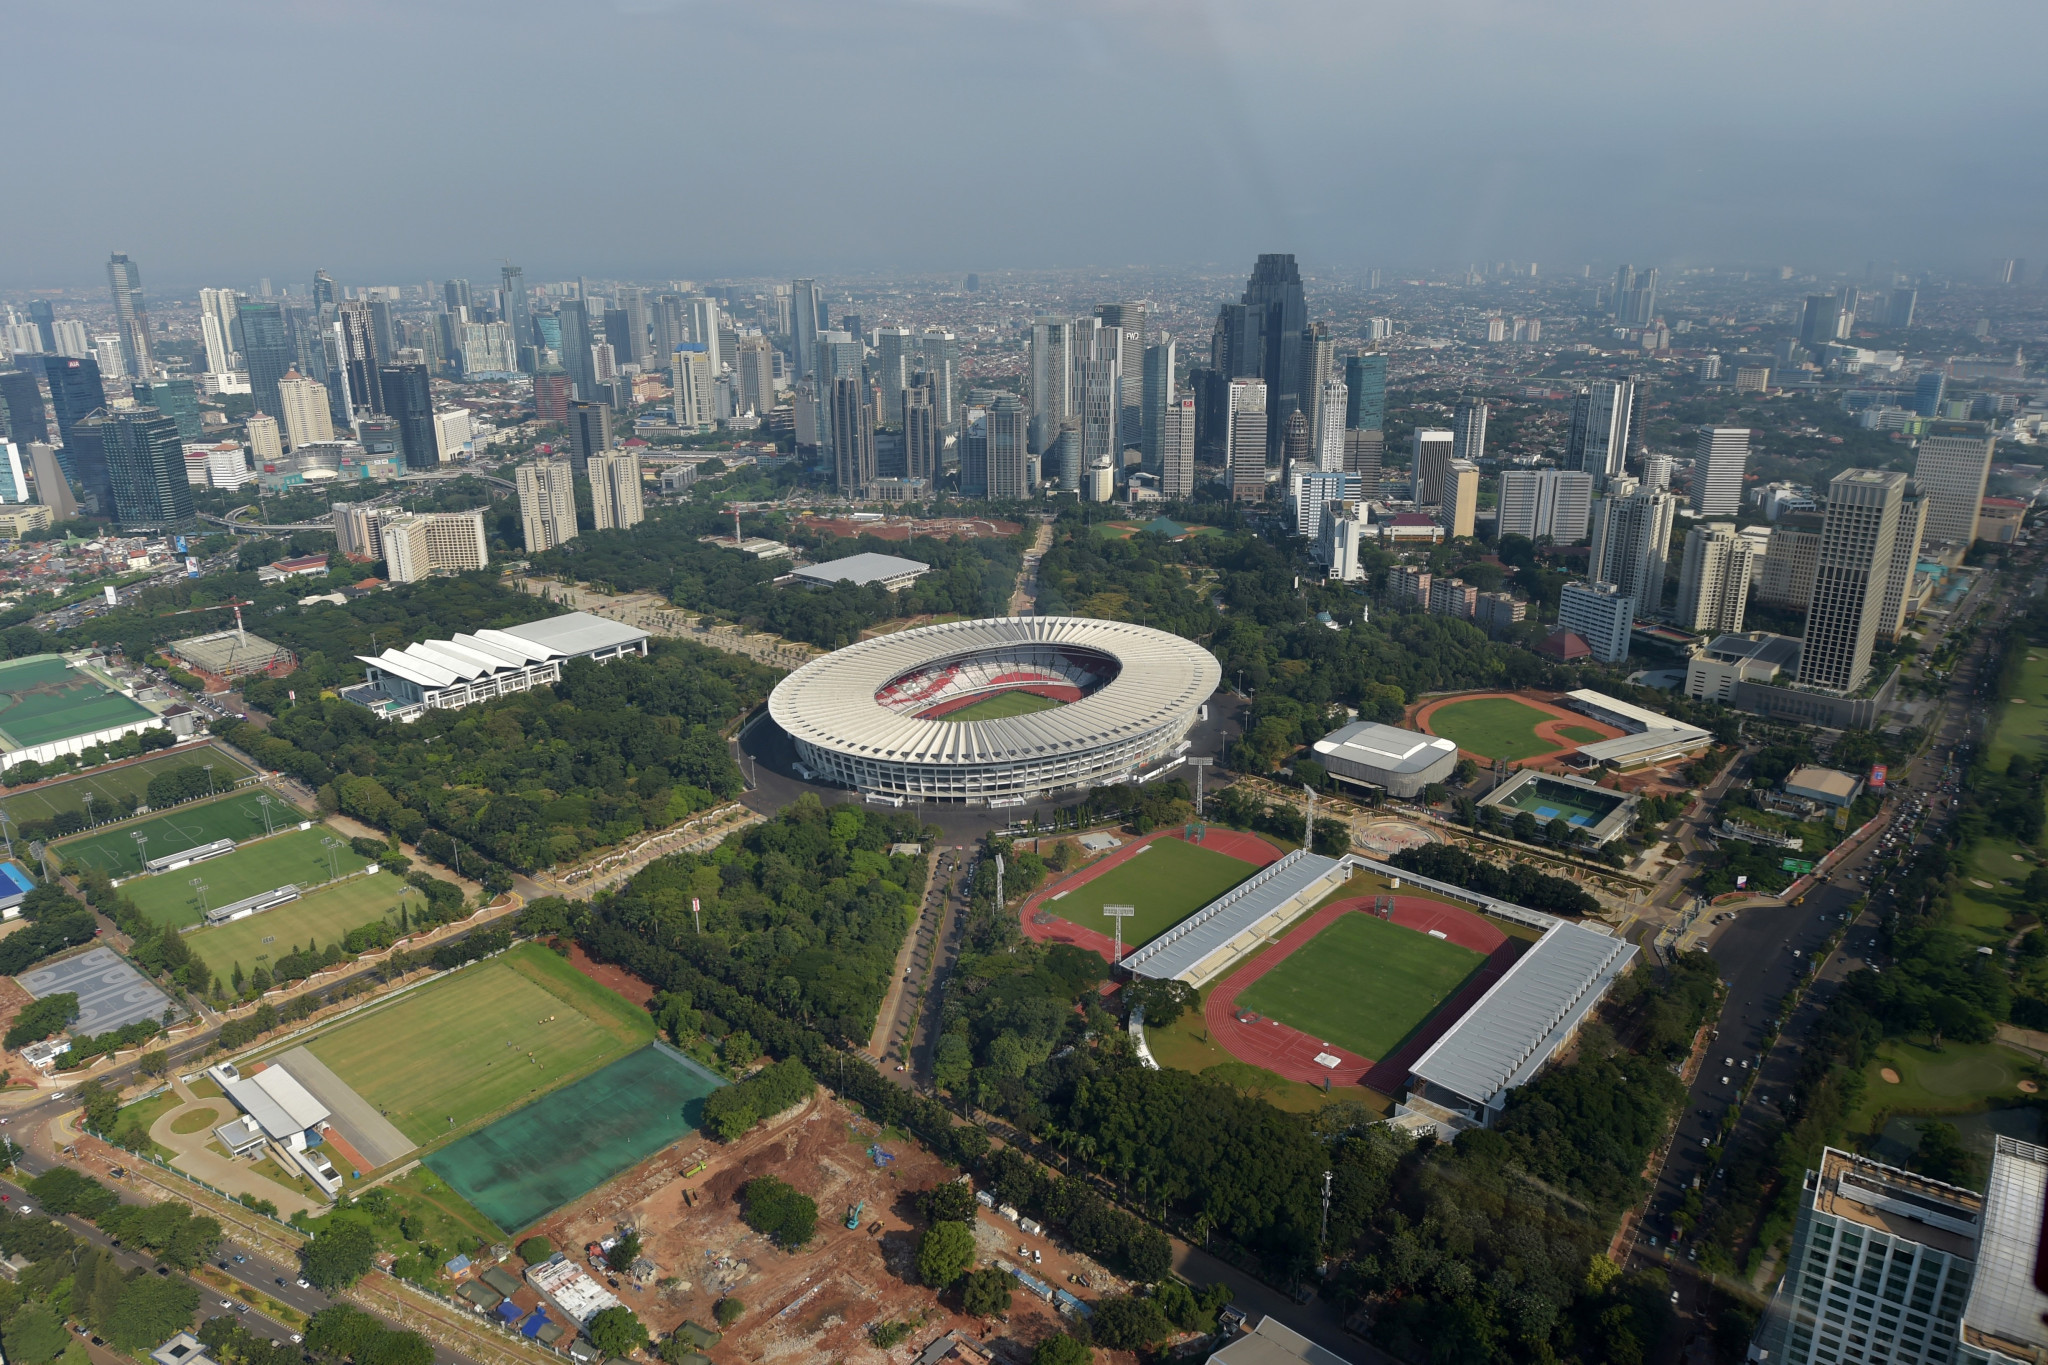 All venues for 2018 Asian Games to be ready by June, Indonesian official claims